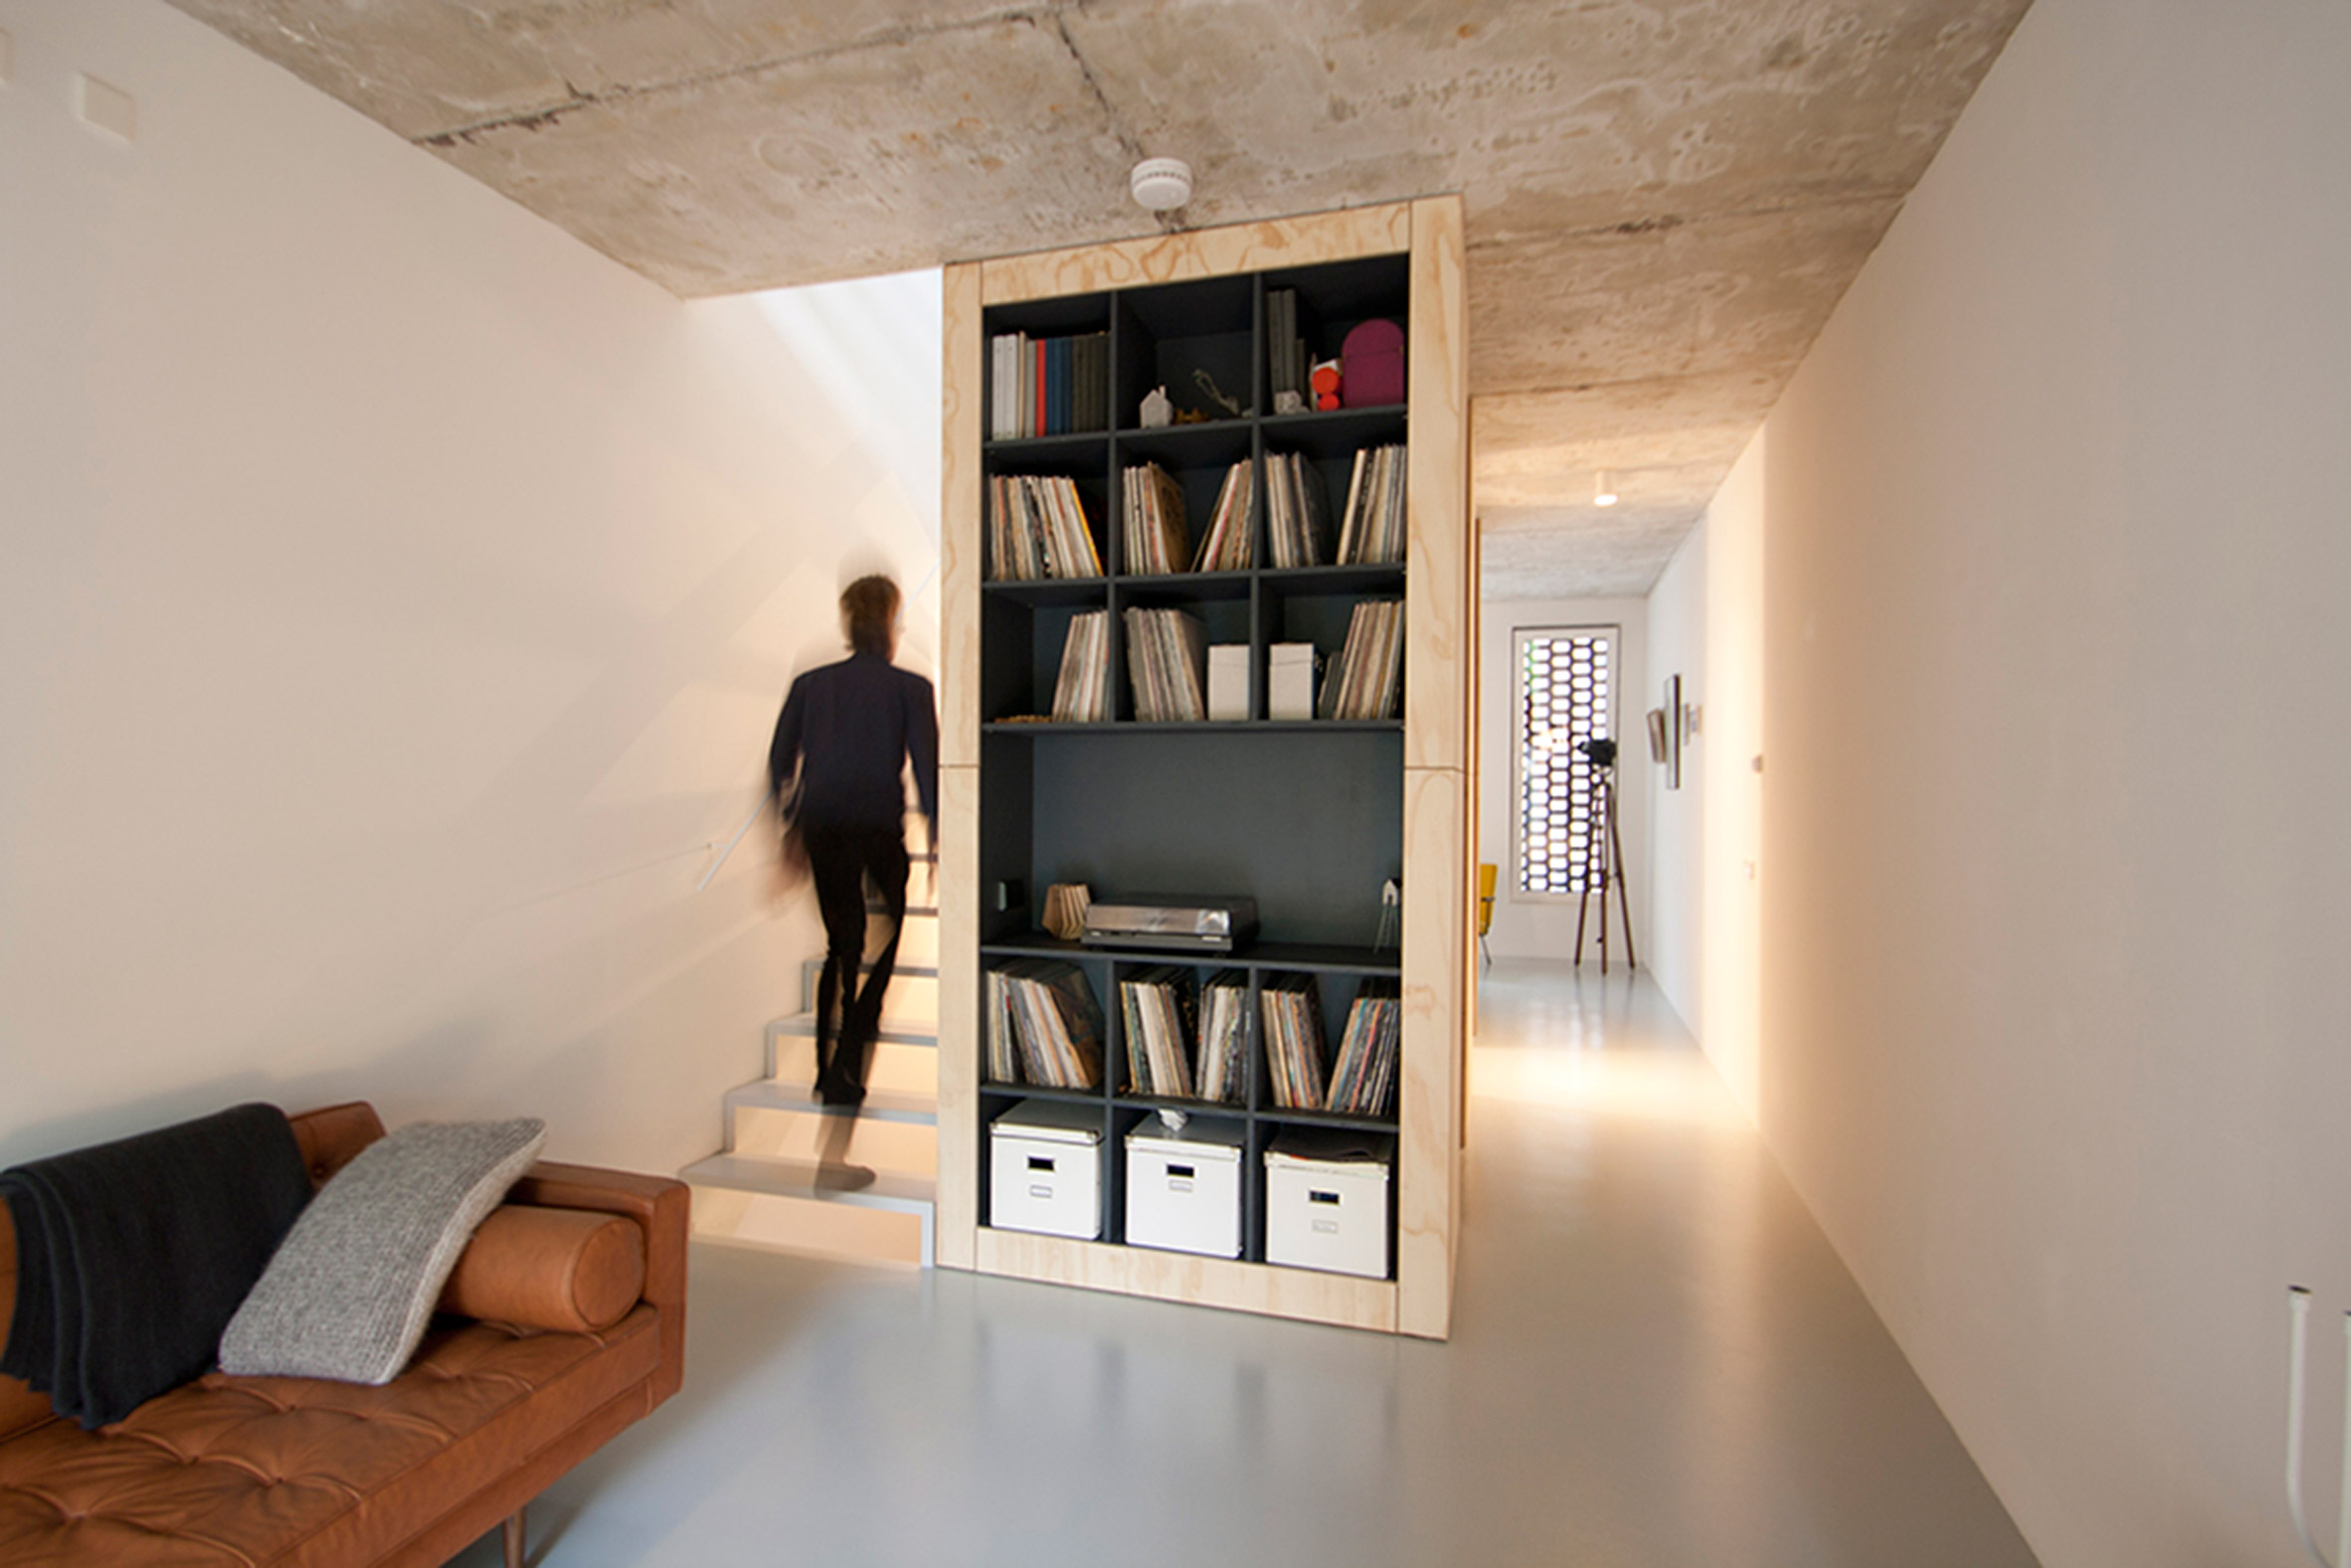 Though the house is really narrow, it can't be said from the first sight due to the smart decor